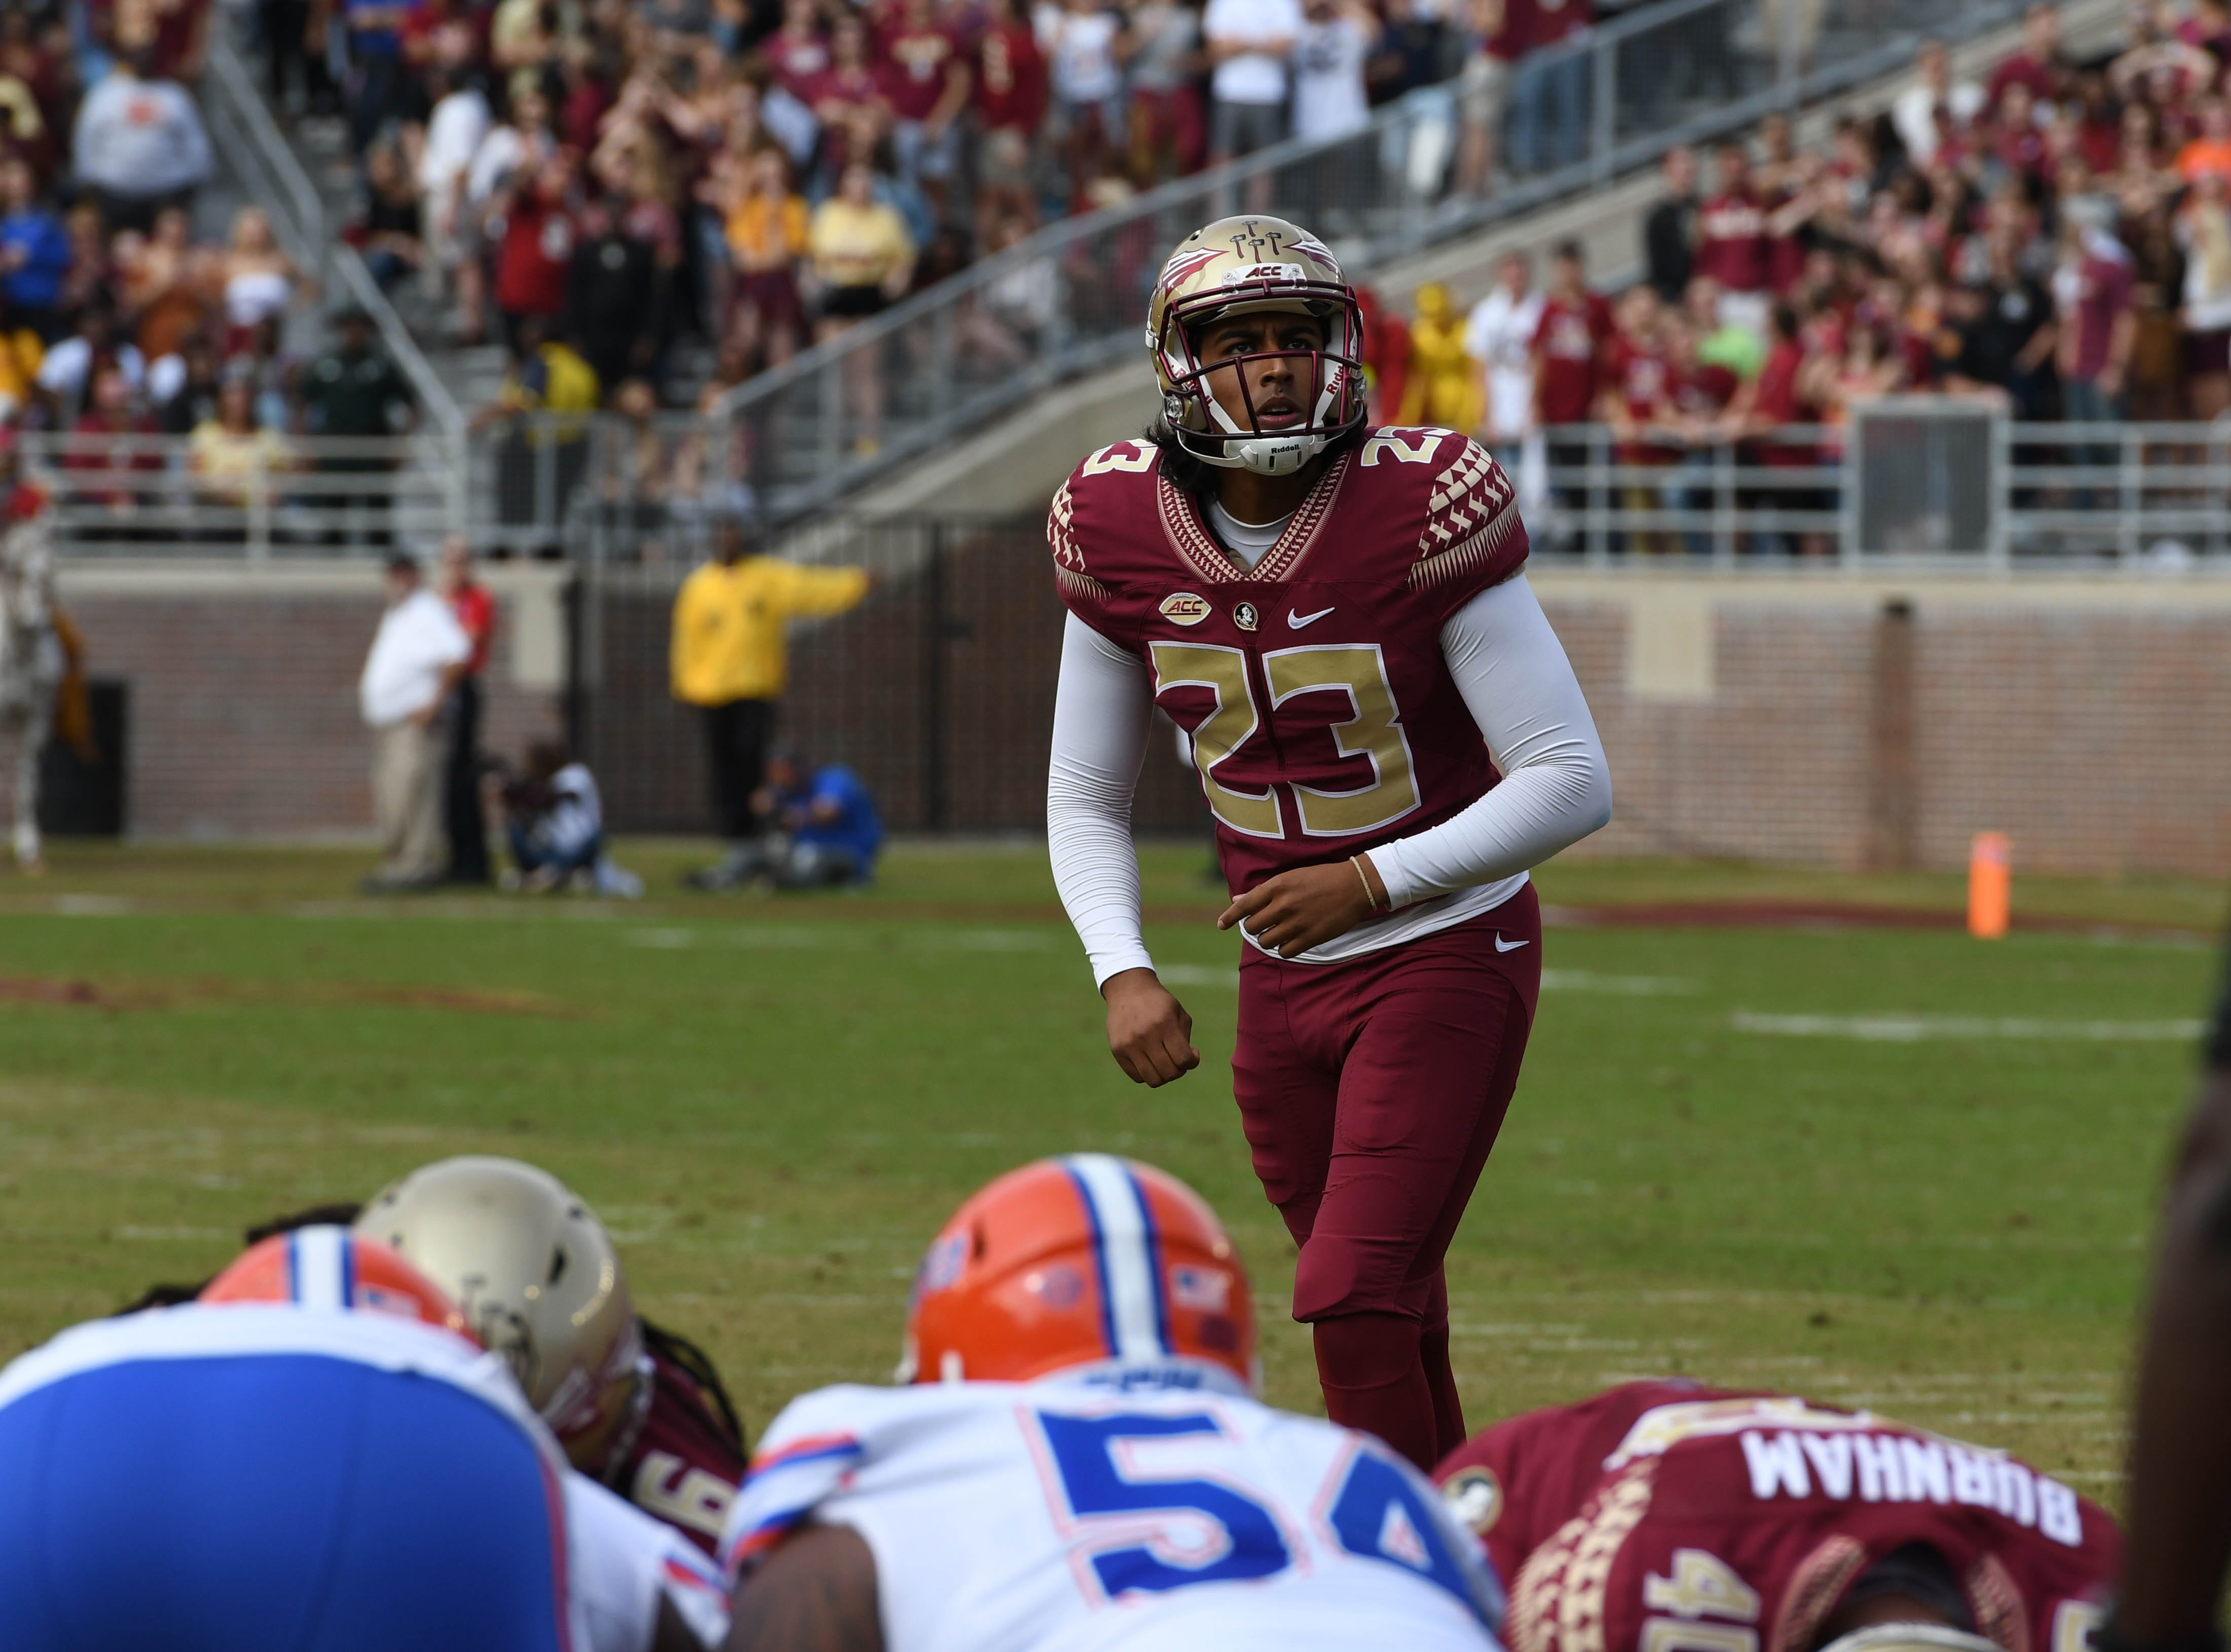 FSU junior kicker Ricky Aguayo (23) kicking an extra point in the second quarter of the FSU game against UF at Doak Campbell Stadium on Novemeber 24, 2018.